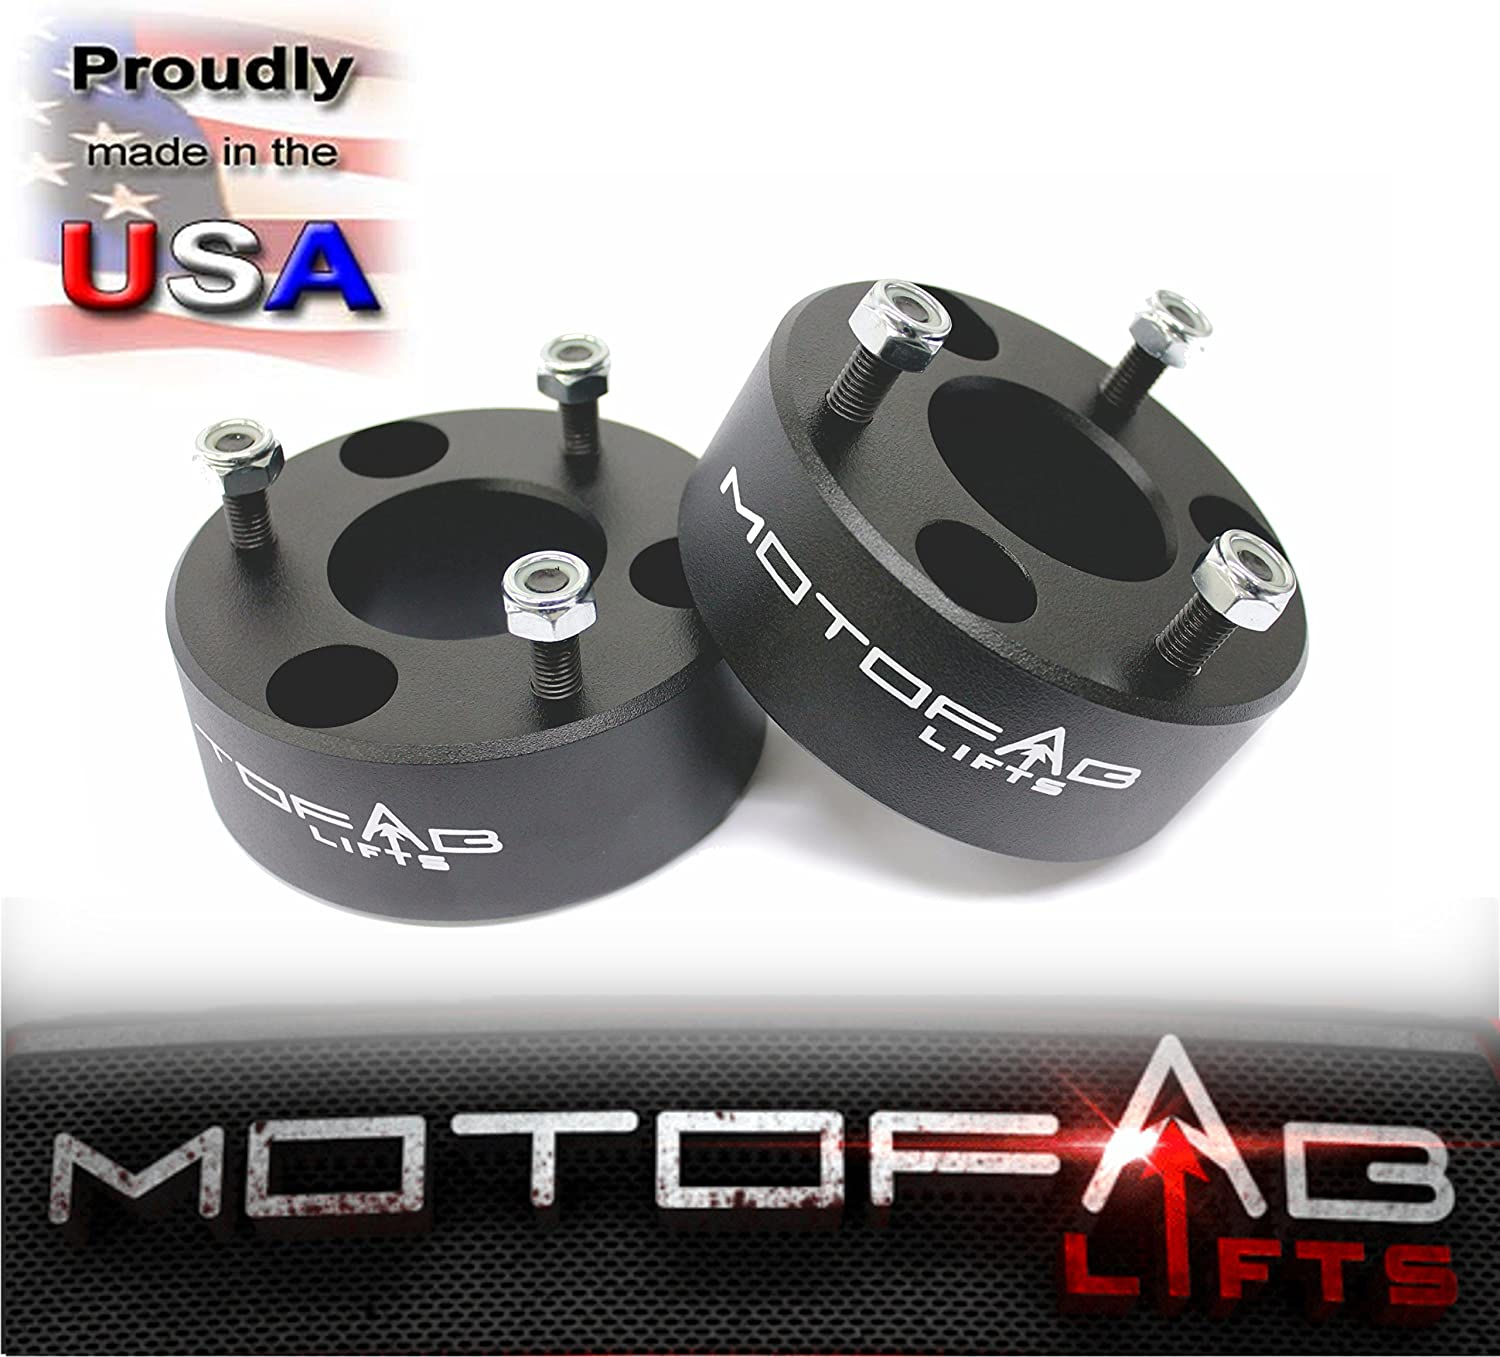 MotoFab Lifts DR-3-3 Front Leveling Lift Kit That Will Raise The Front Of Your Dodge Ram Pickup 3